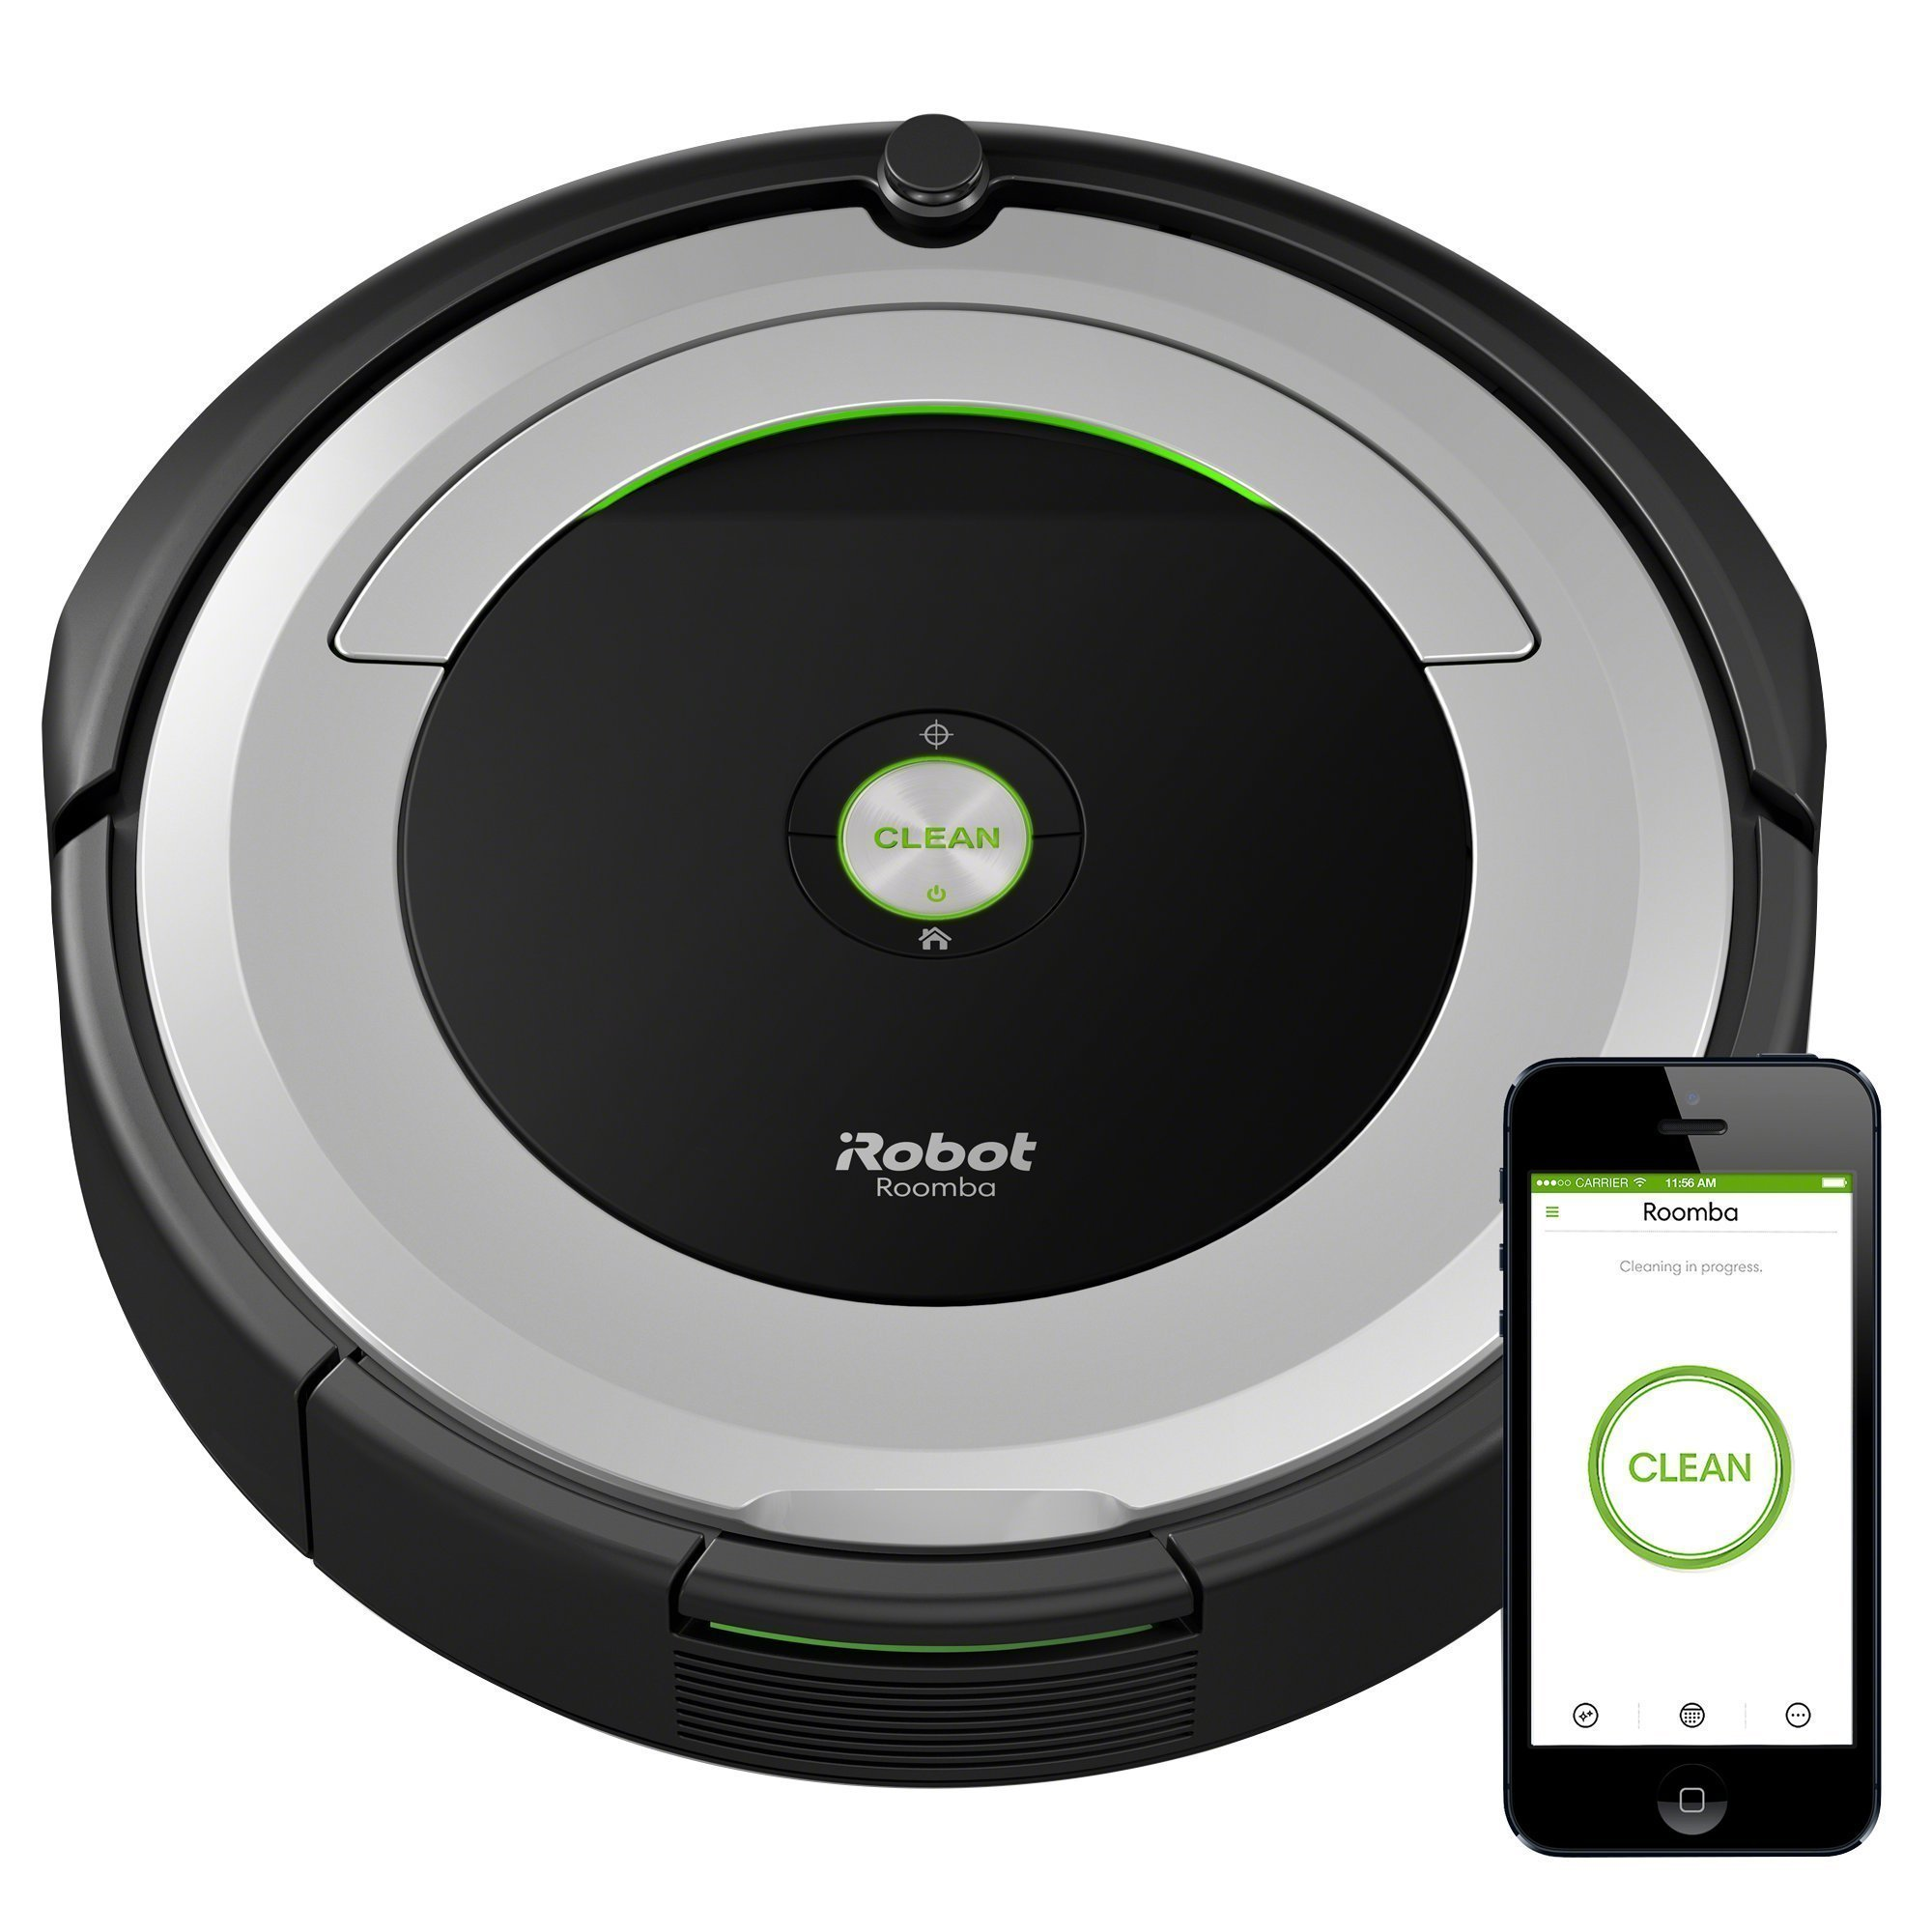 iRobot Roomba 690 Robot Vacuum with Wi-Fi Connectivity (Renewed)